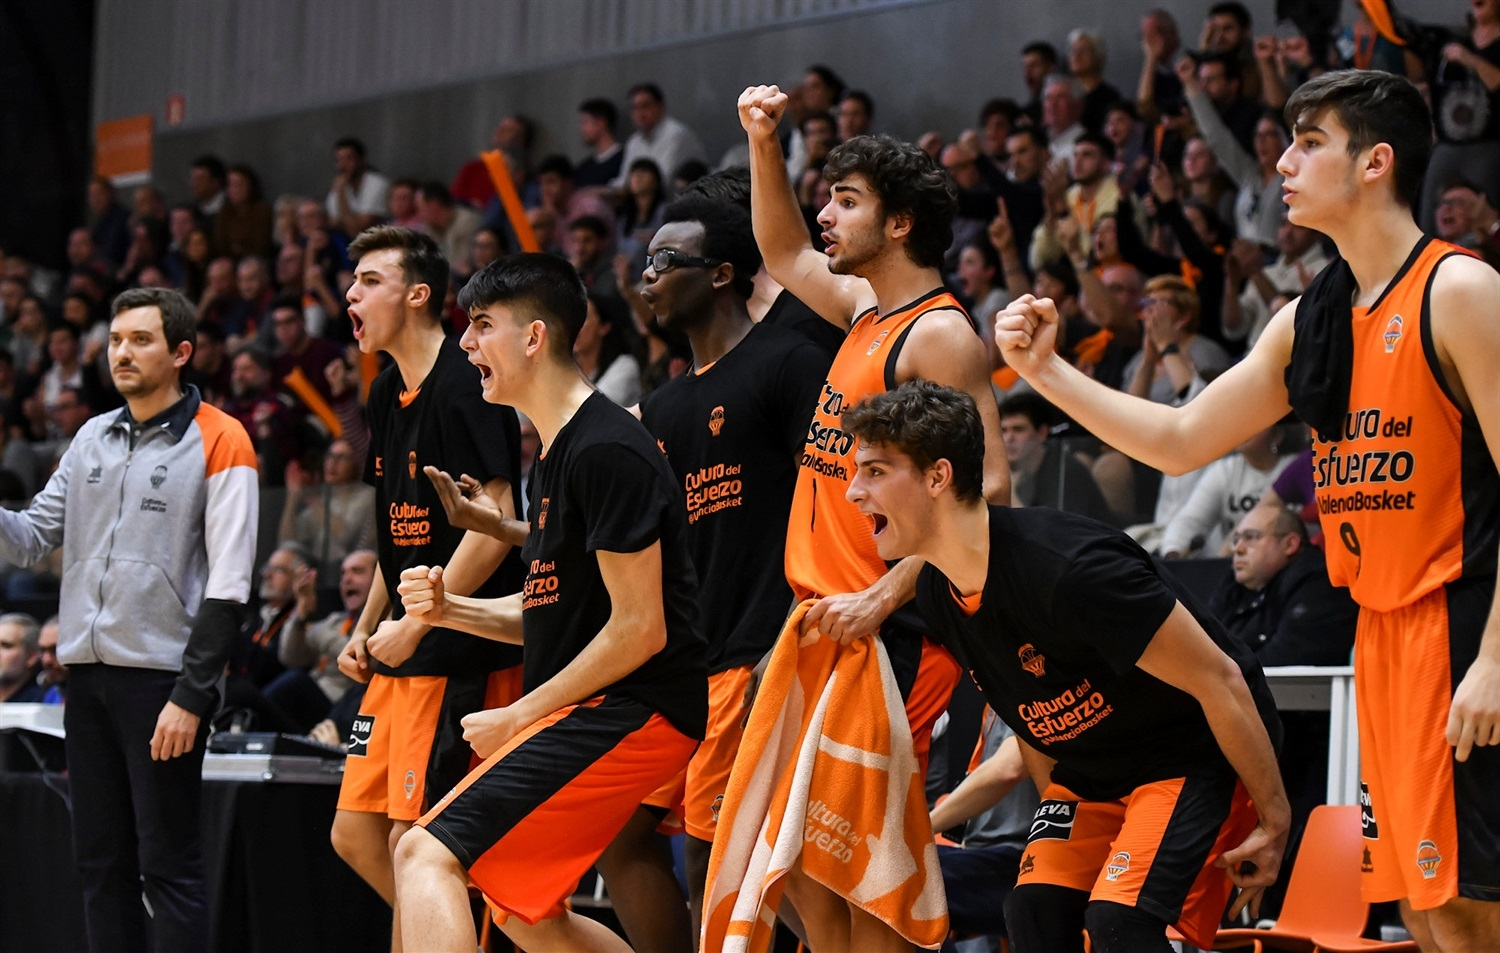 U18 Valencia Basket celebrates (photo Miguel Angel Polo - Valencia) - JT18